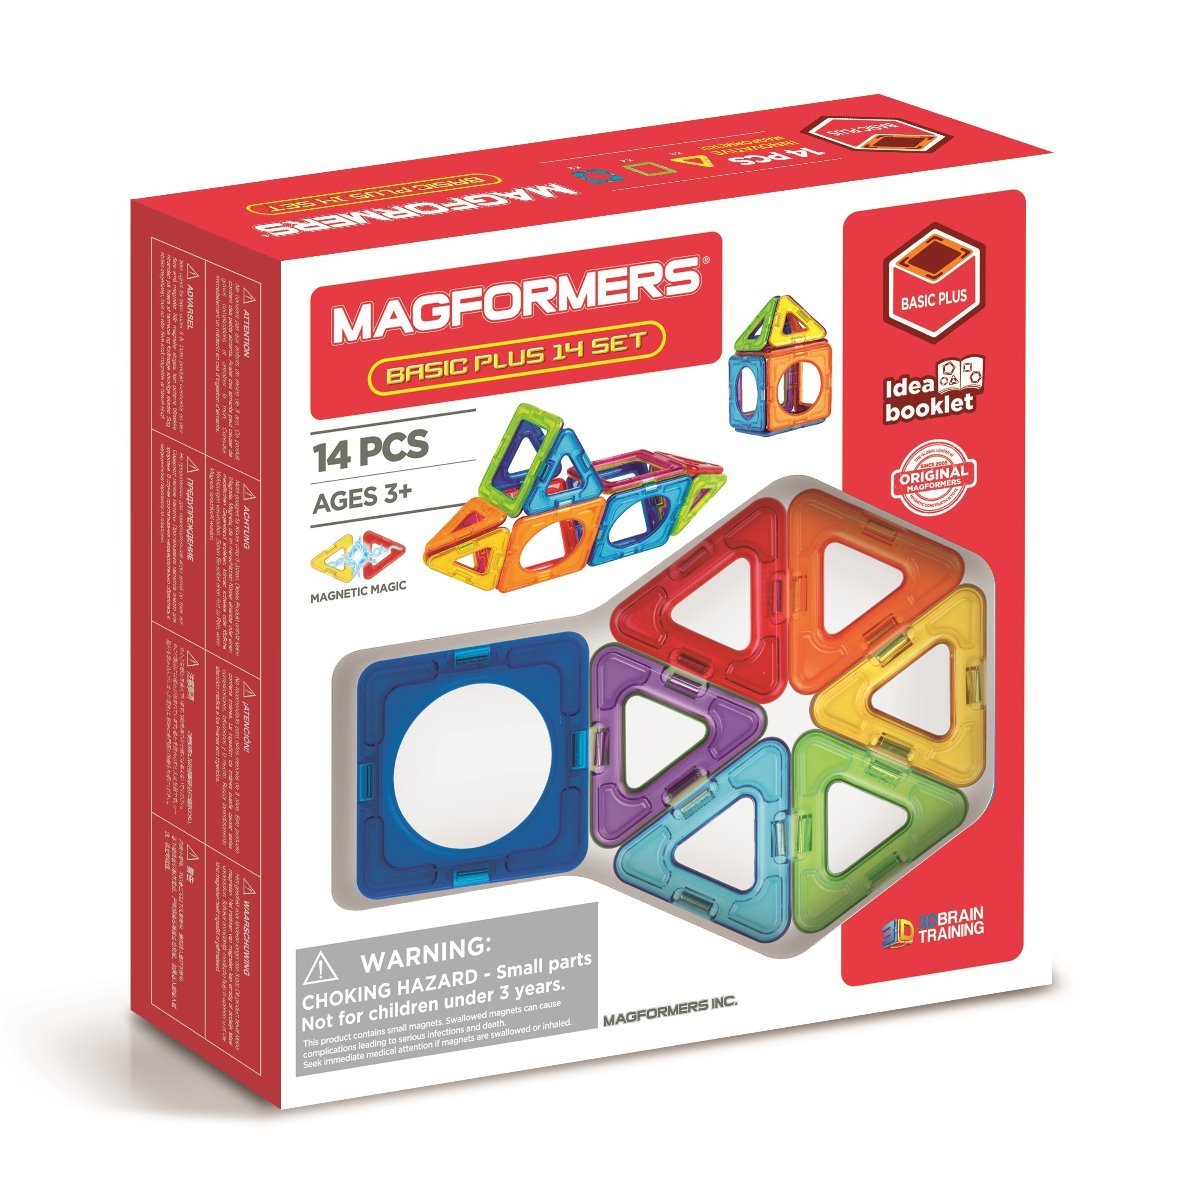 Magformers Basic Plus 14 Set at Little Sprout